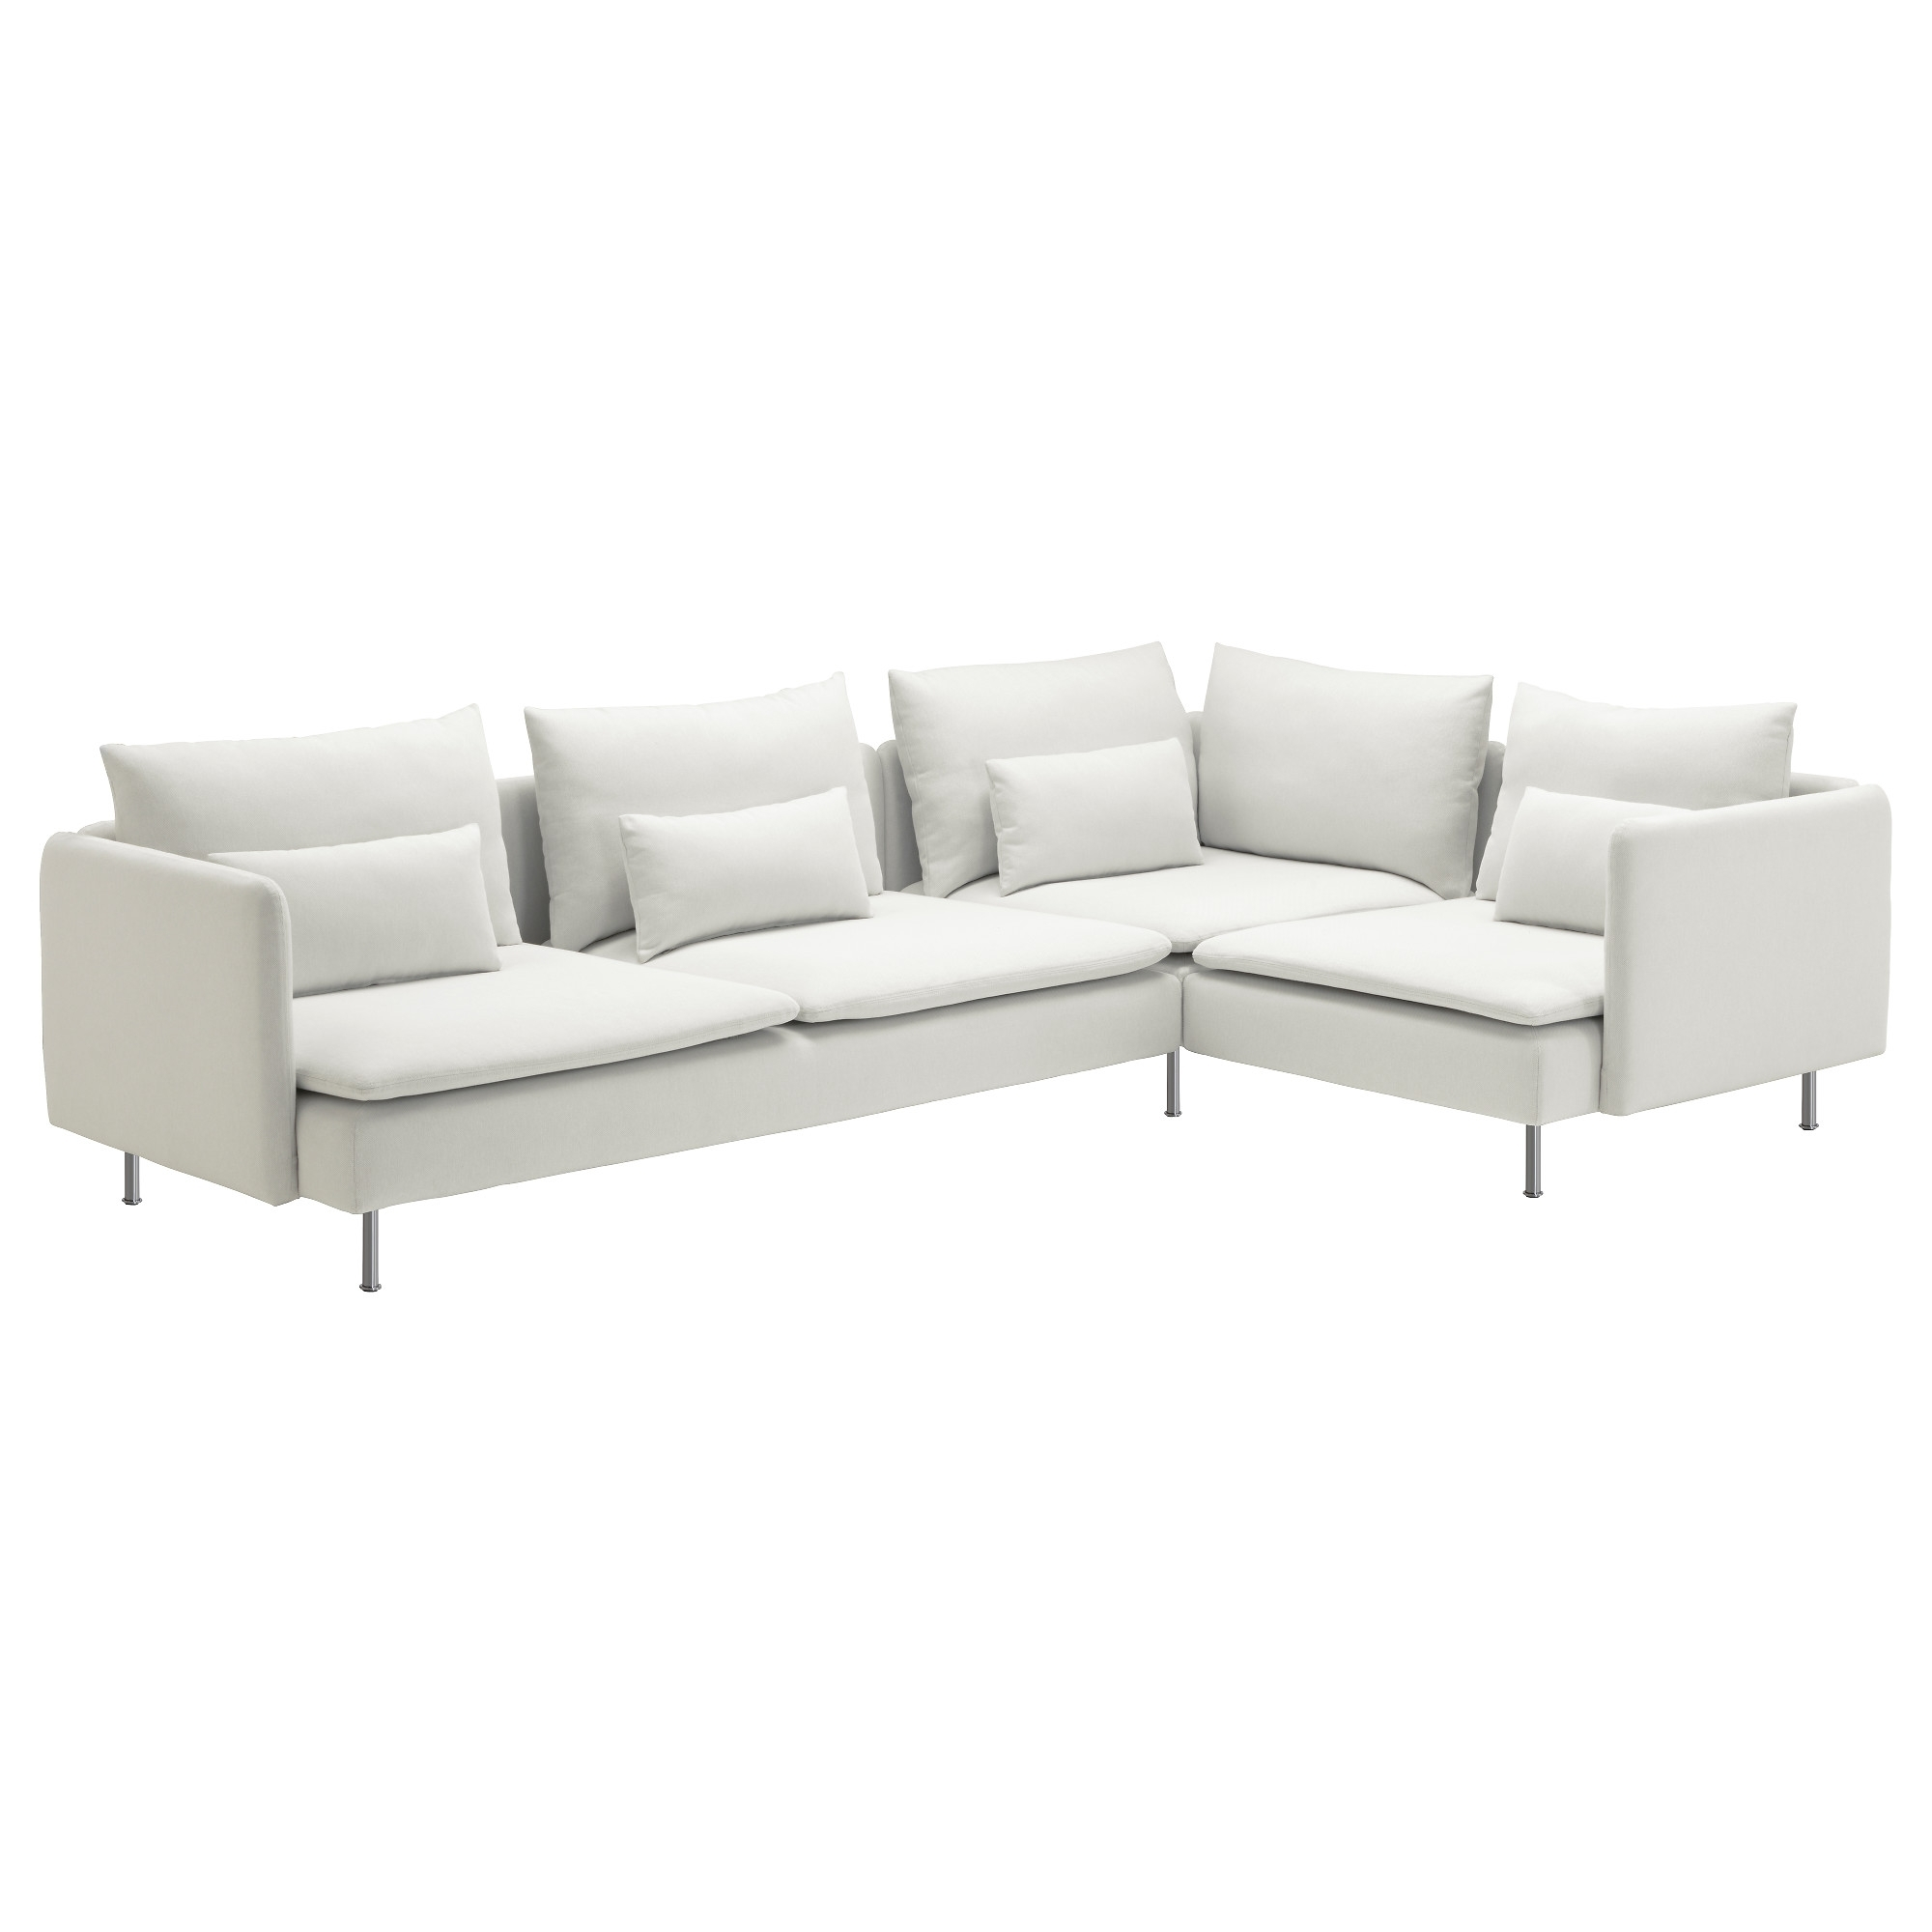 4 Seat Sofas Intended For Most Popular Söderhamn Sectional, 4 Seat Corner – Samsta Light Pink – Ikea (View 13 of 20)